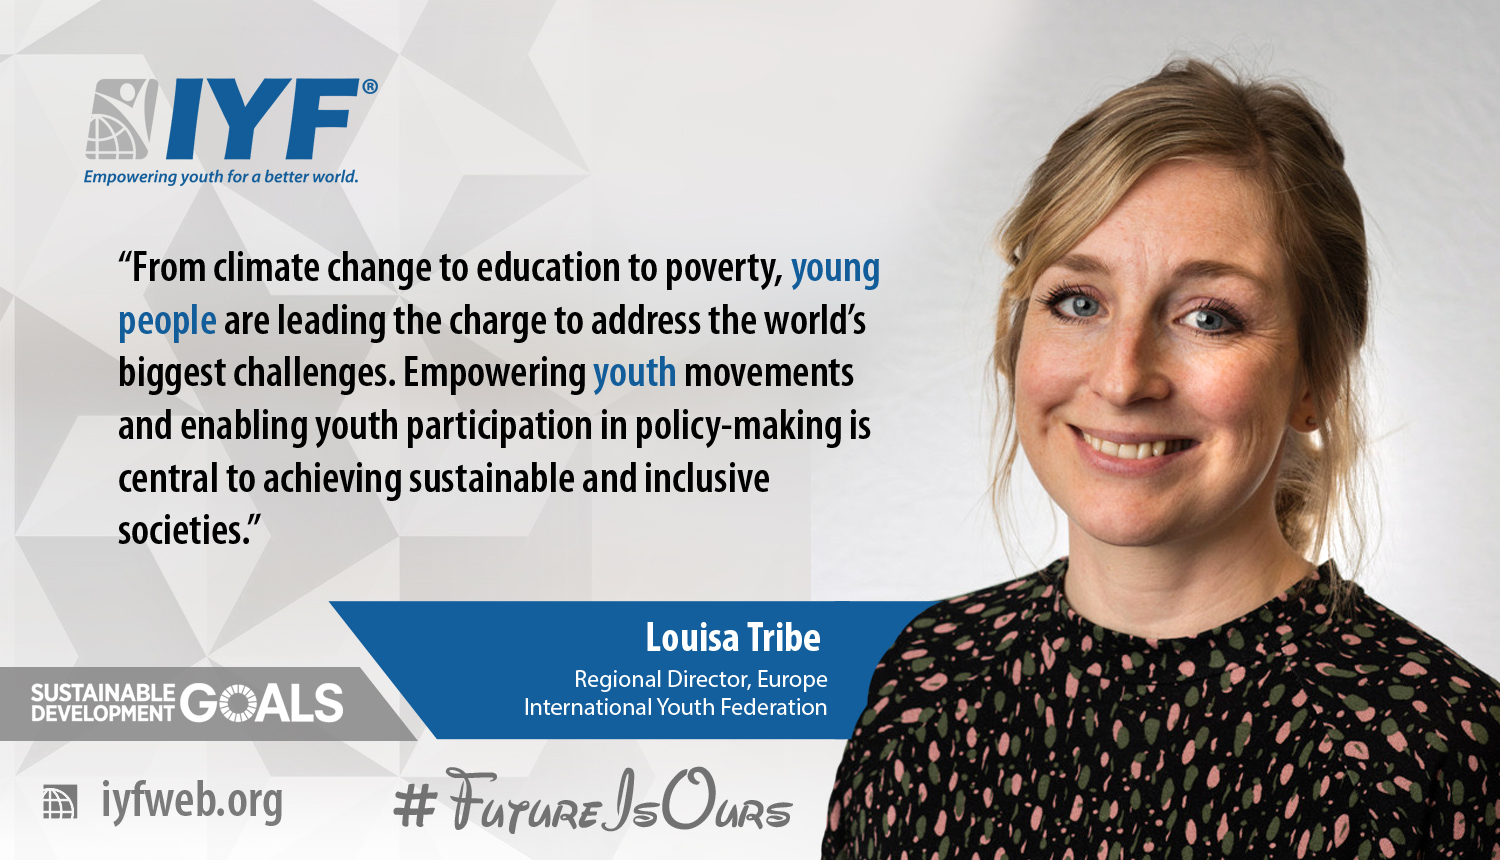 Louisa Tribe, IYF Regional Director for Europe